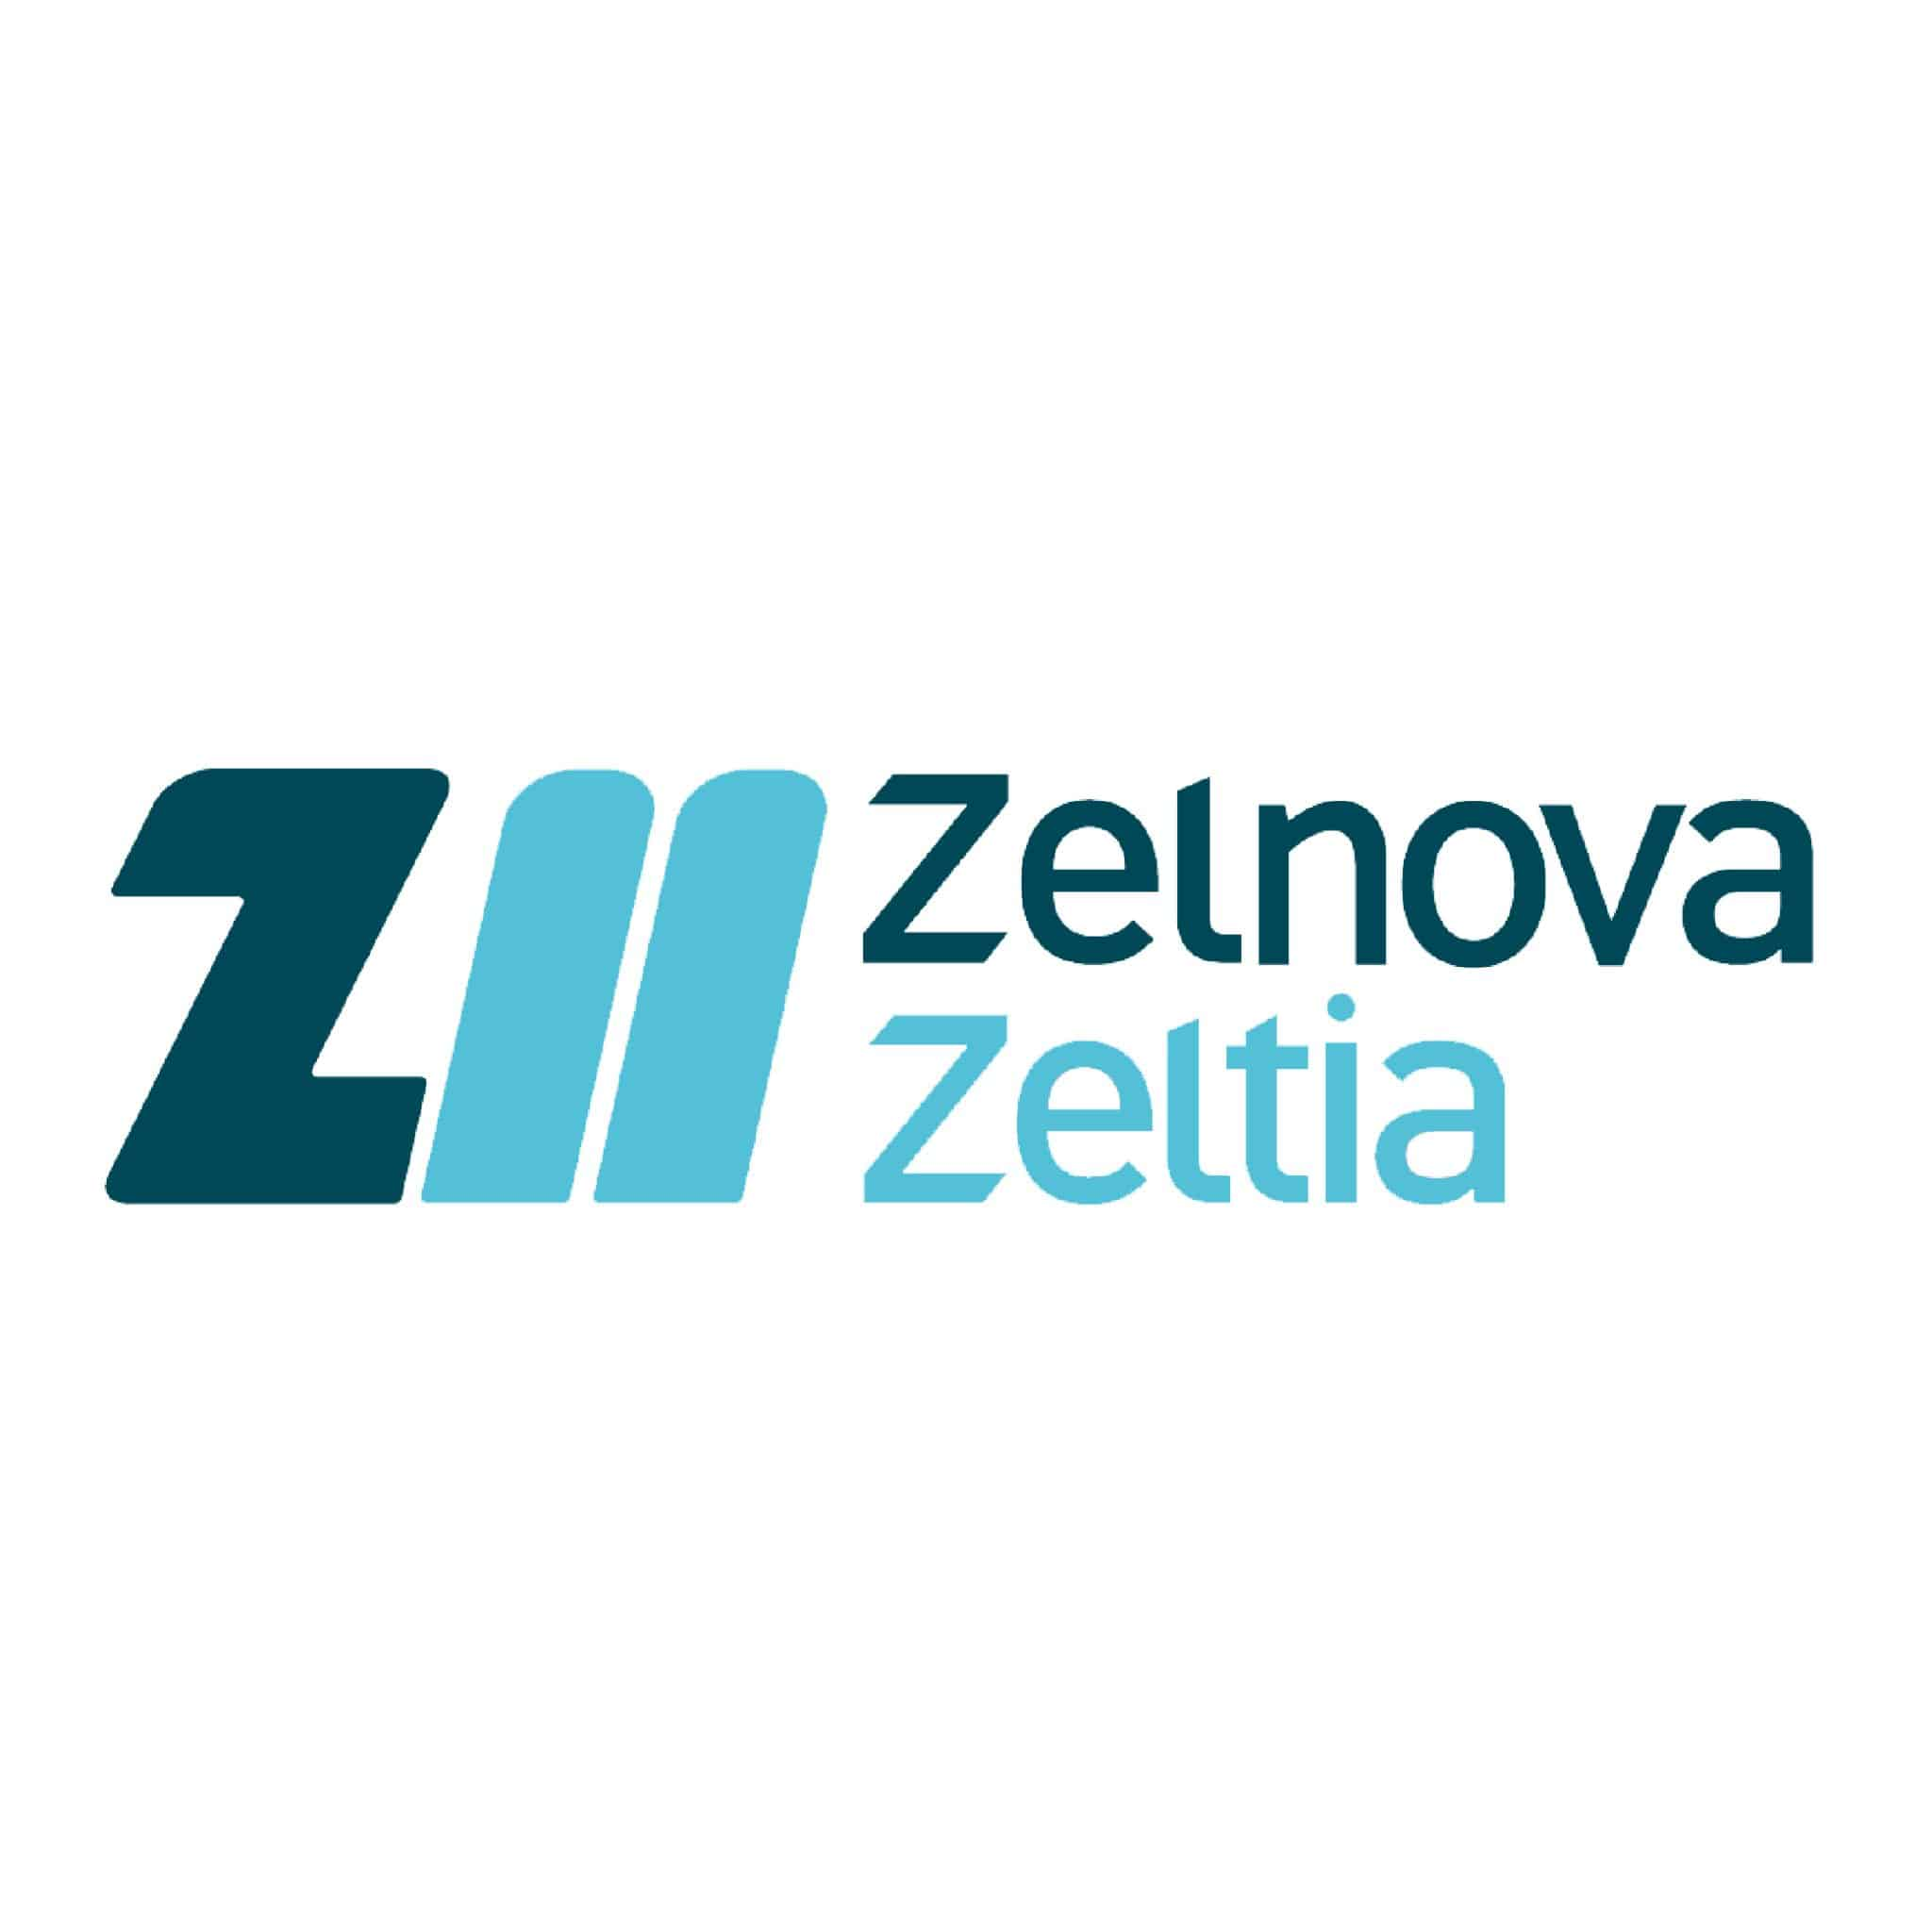 Zelnova e Inbound Marketing, apuesta segura